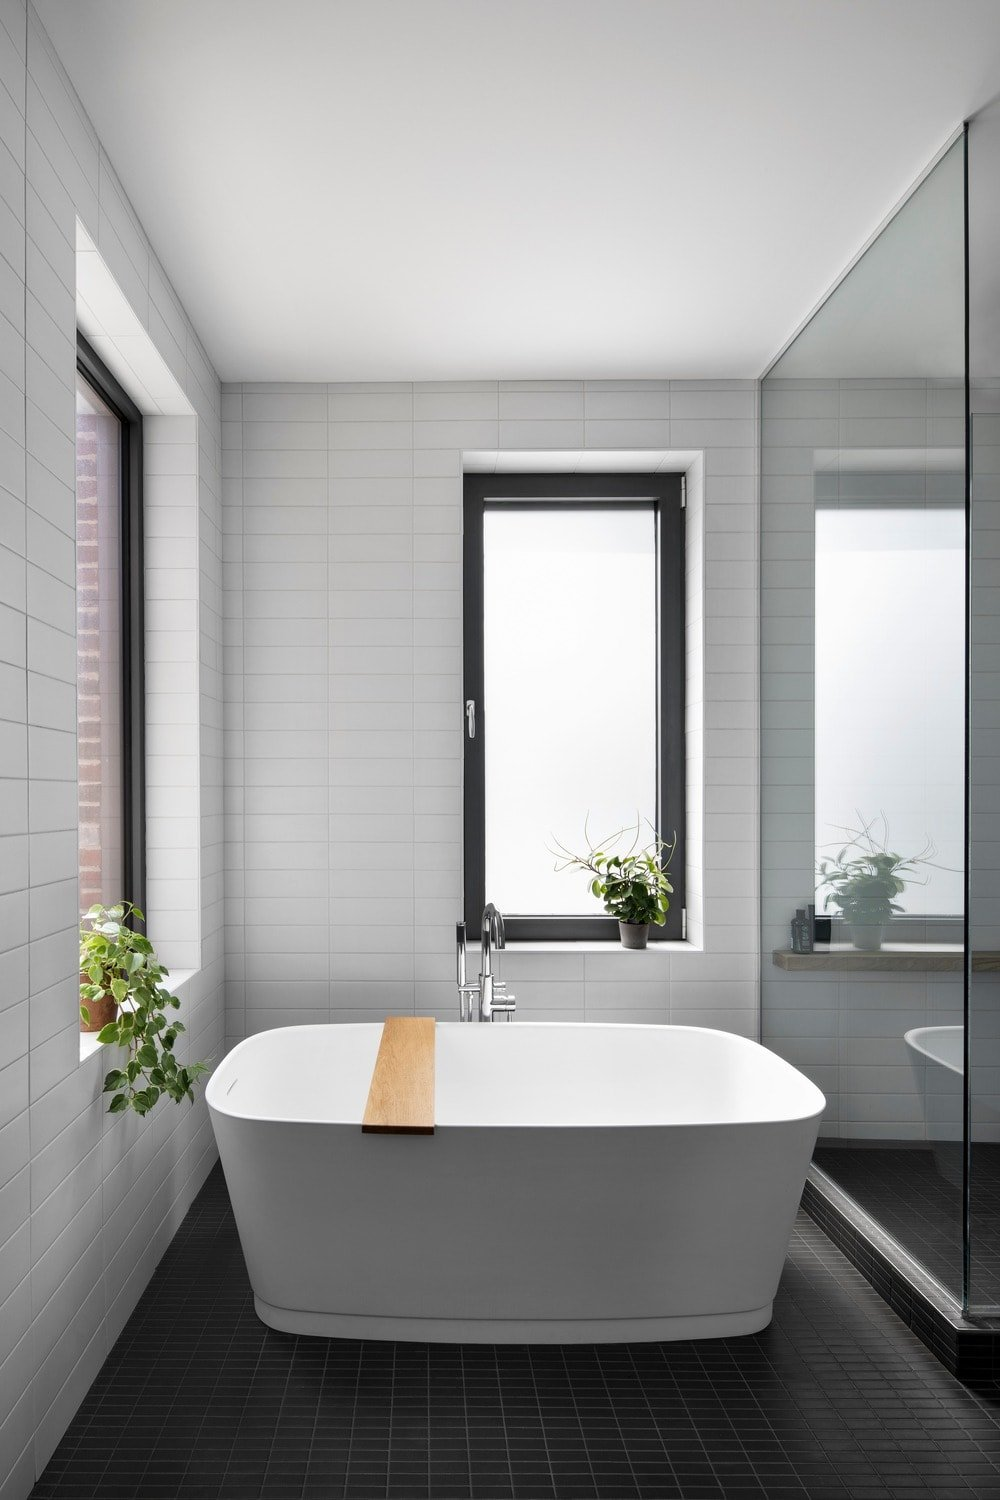 This is the bathroom that has a white freestanding bathtub to contrast the black flooring tiles and the glass wall of the shower area beside it.